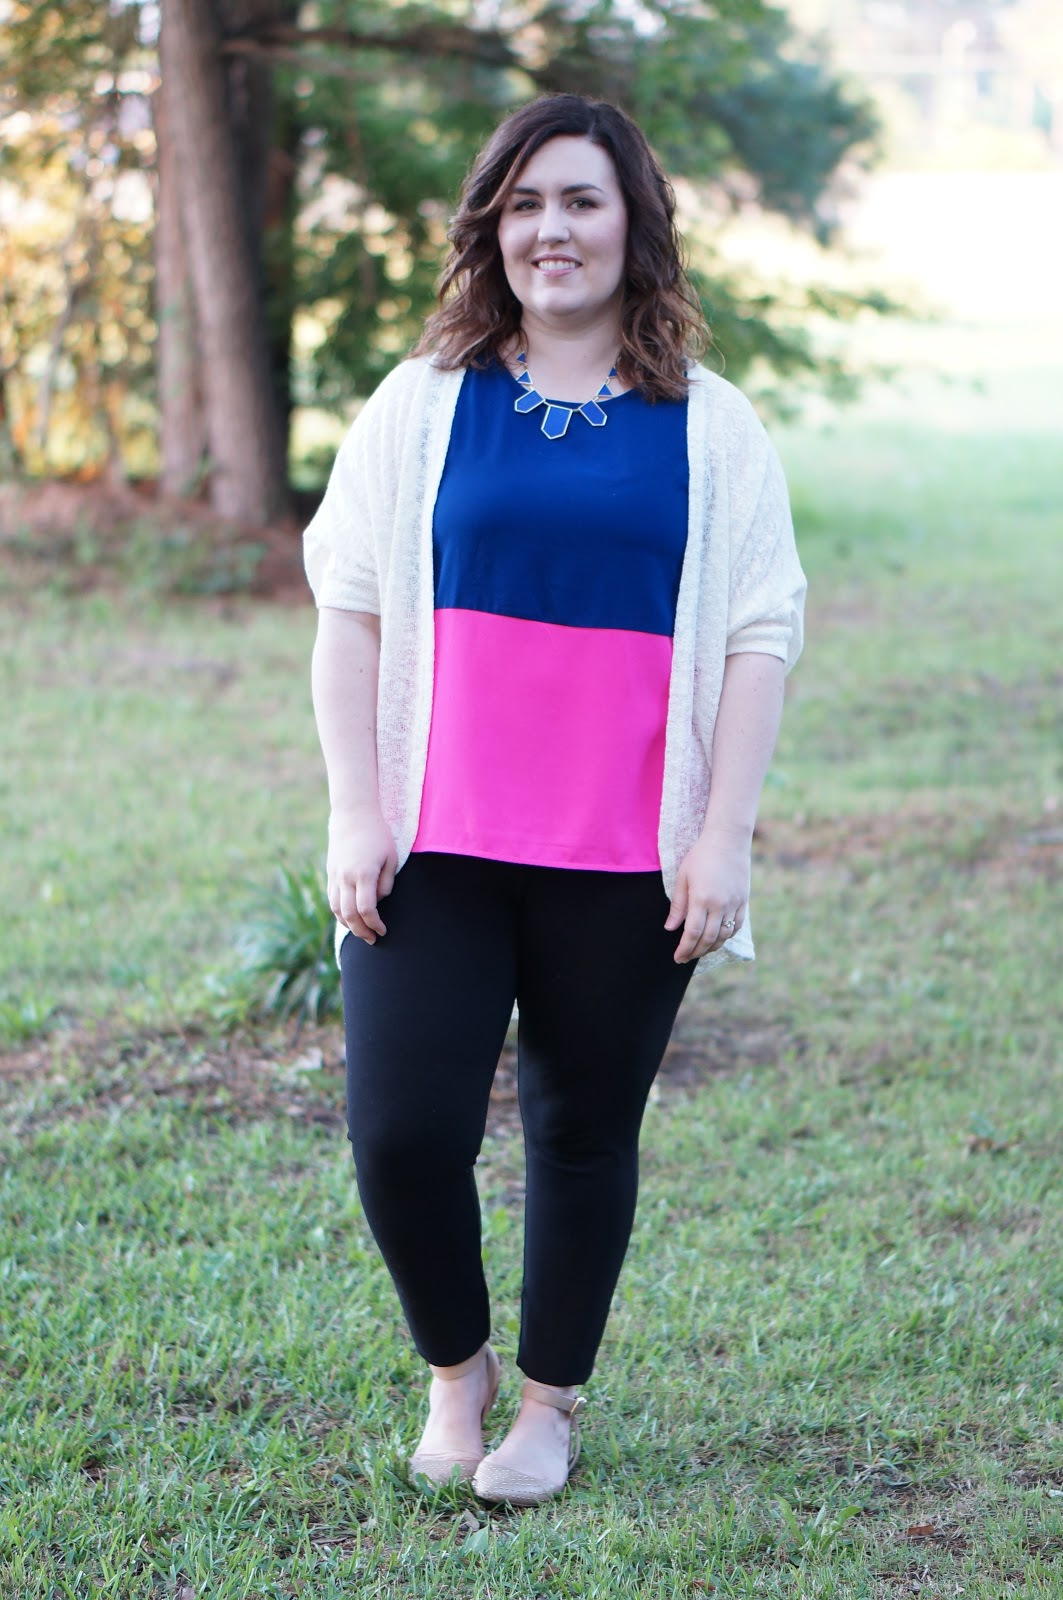 Rebecca Lately Colorblock Top Target Cardigan J. Crew Pixie Pants House of Harlow Stations Necklace Cobalt Blue Sam Edelman Brina